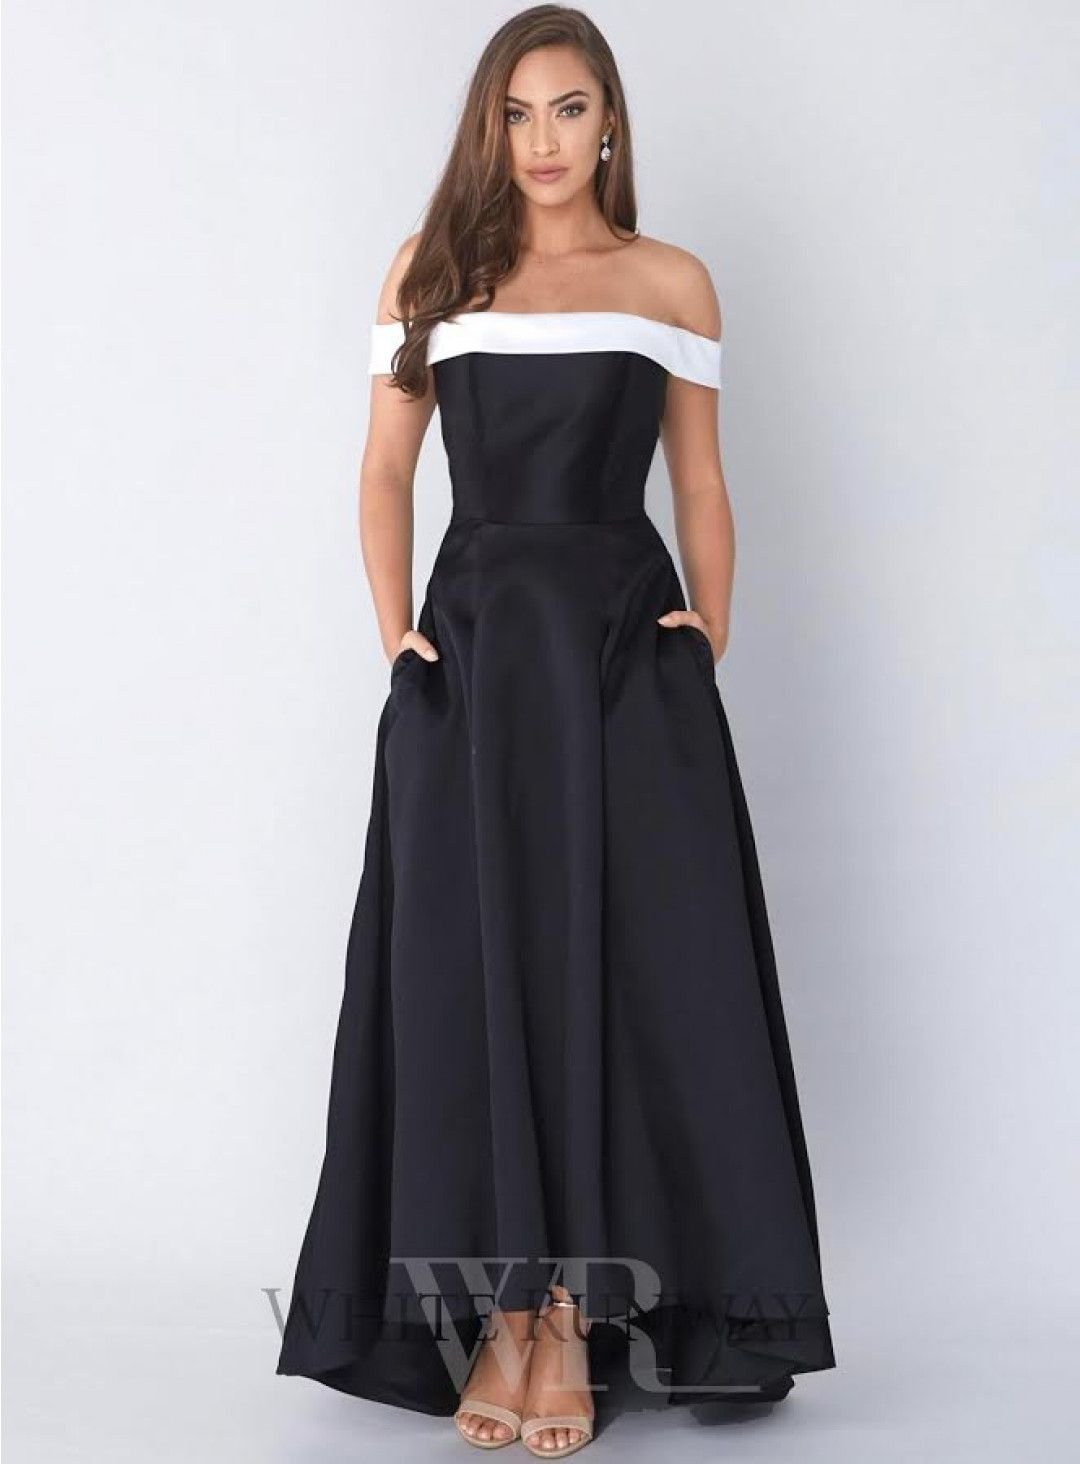 a316c26d9d4e Darcy Dress. A beautiful hi-lo dress by Tinaholy. An off shoulder style  featuring a straight neckline and flared skirt.